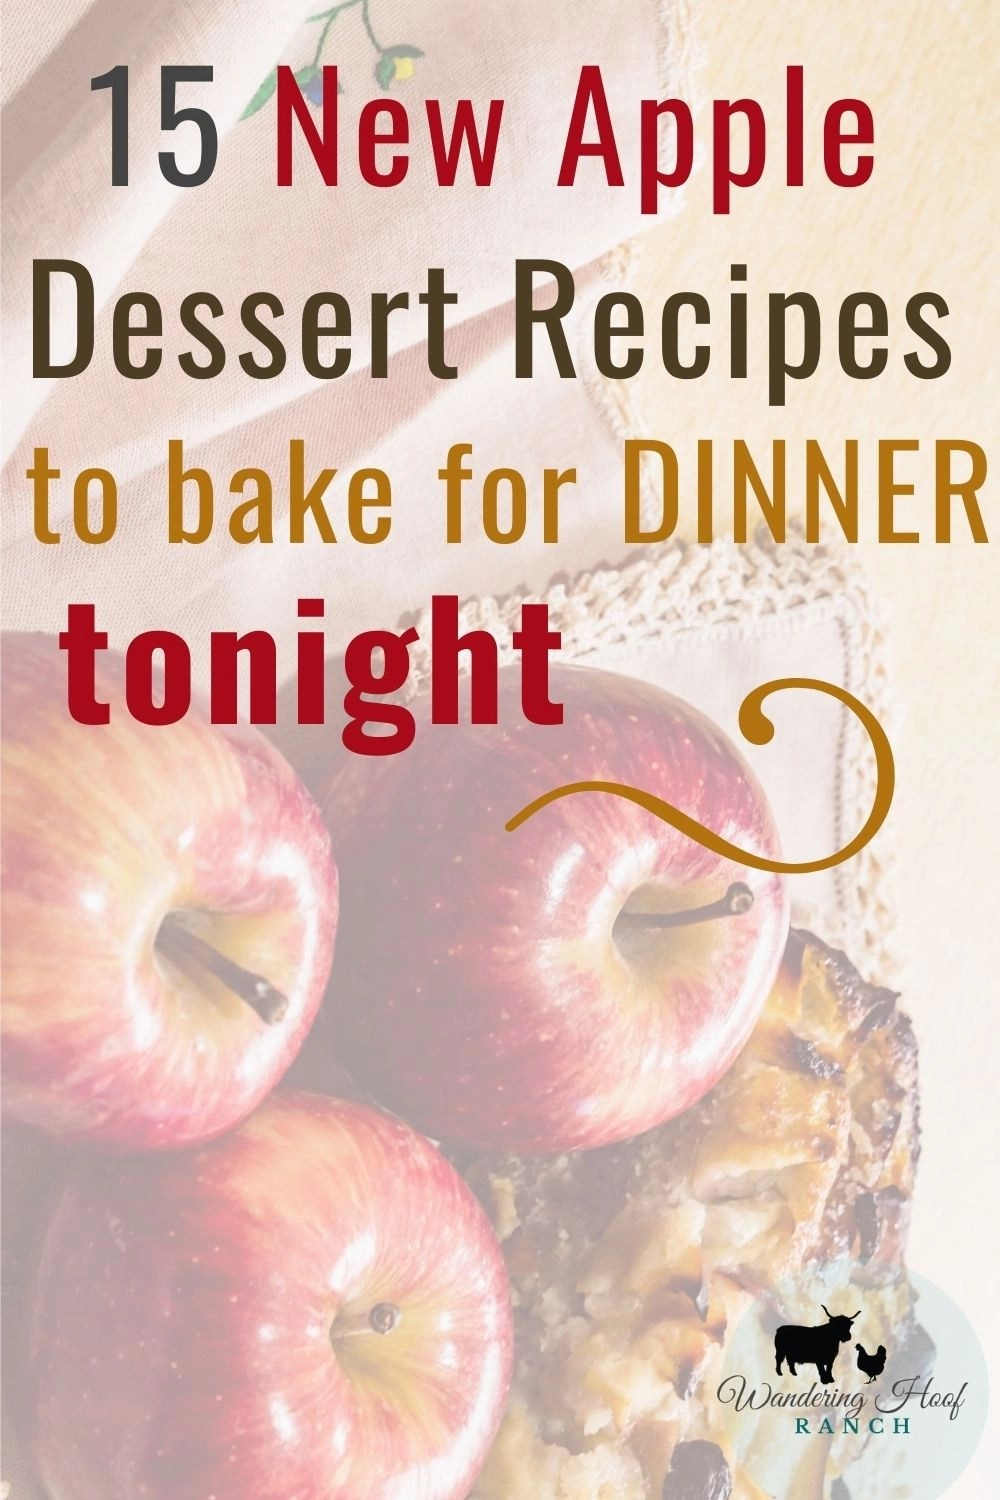 Pin image, 15 new apple dessert recipes to bake for dinner tonight